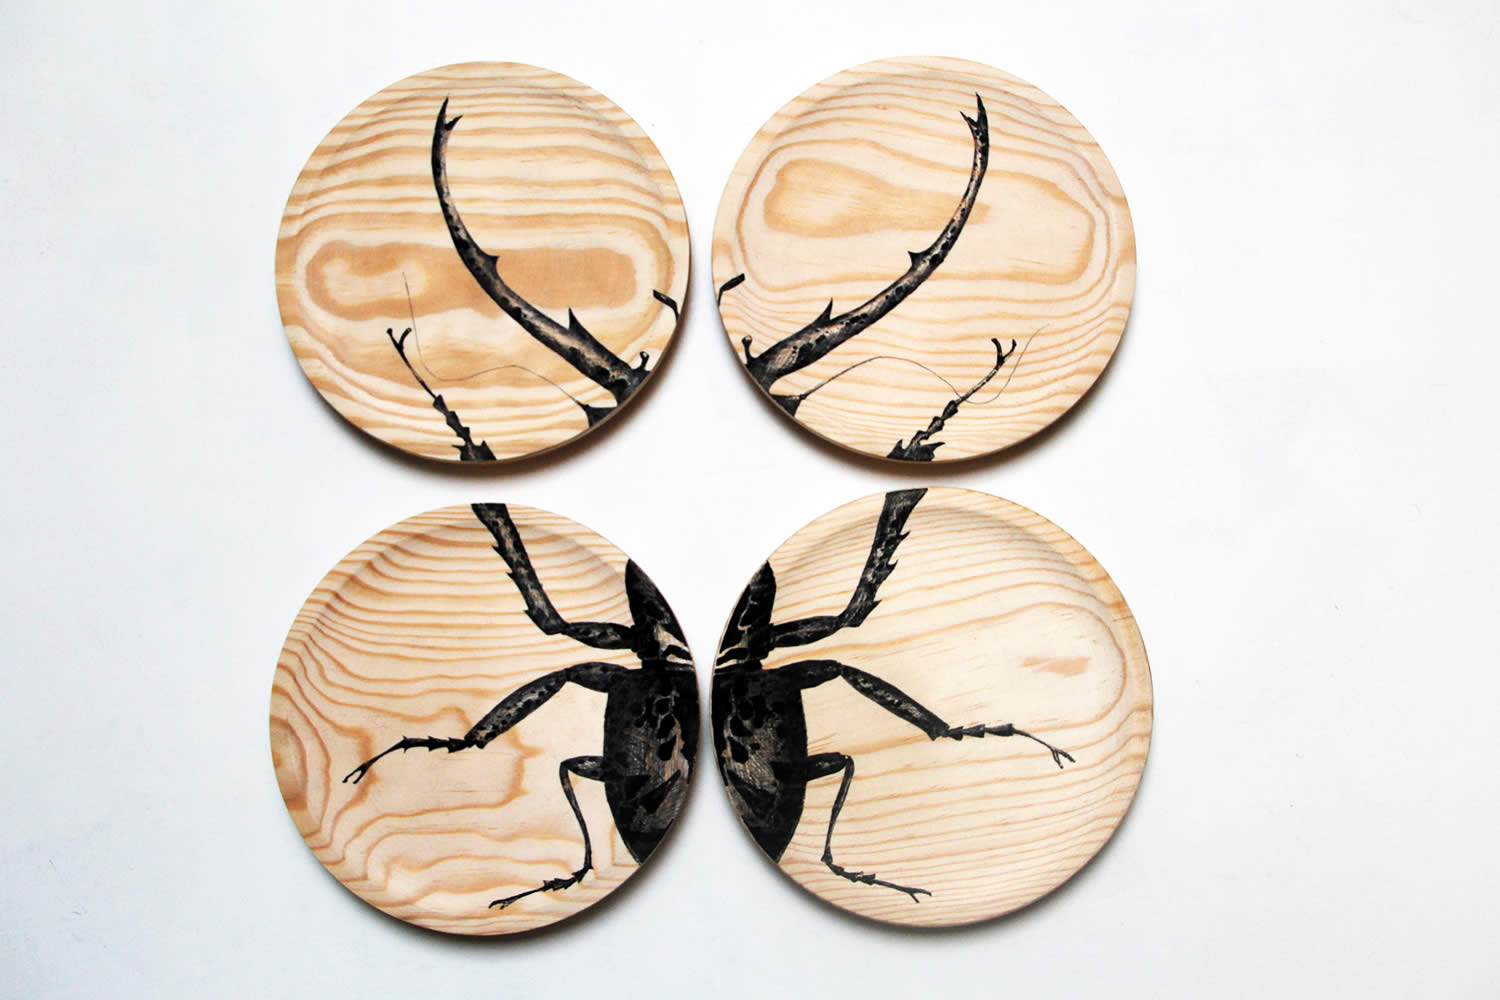 insect wood four pieces, wood by raul gutierrez